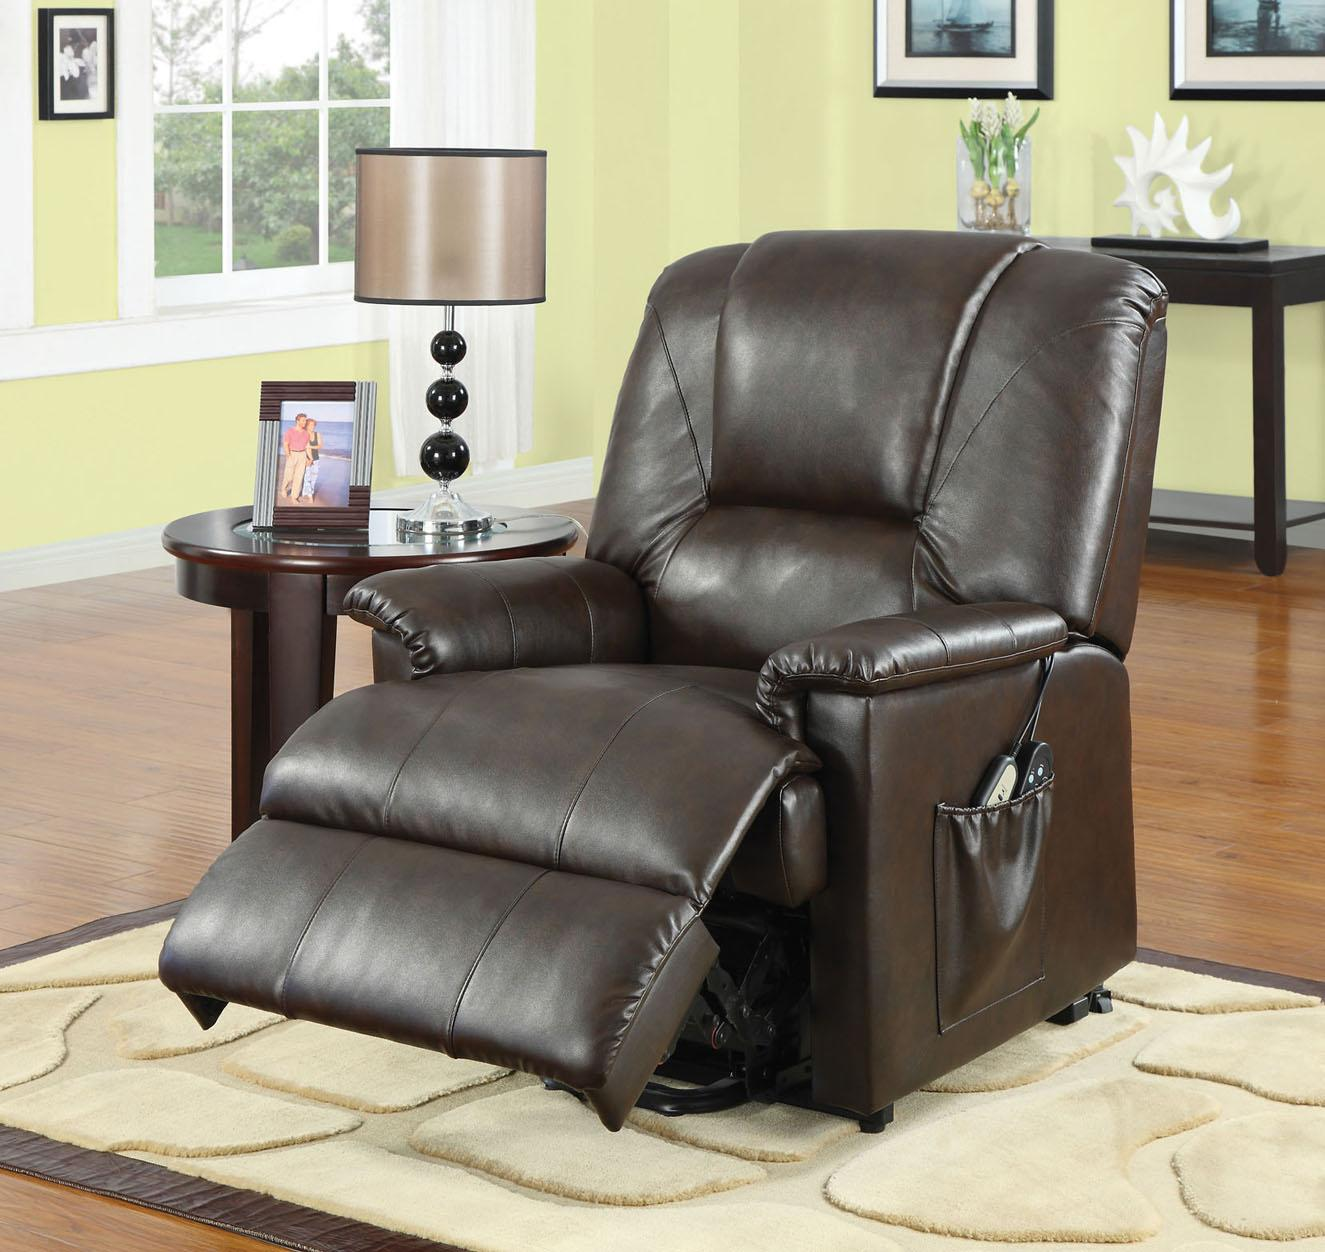 Acme Furniture Reseda  Recliner with Massage Functions - Item Number: 10652